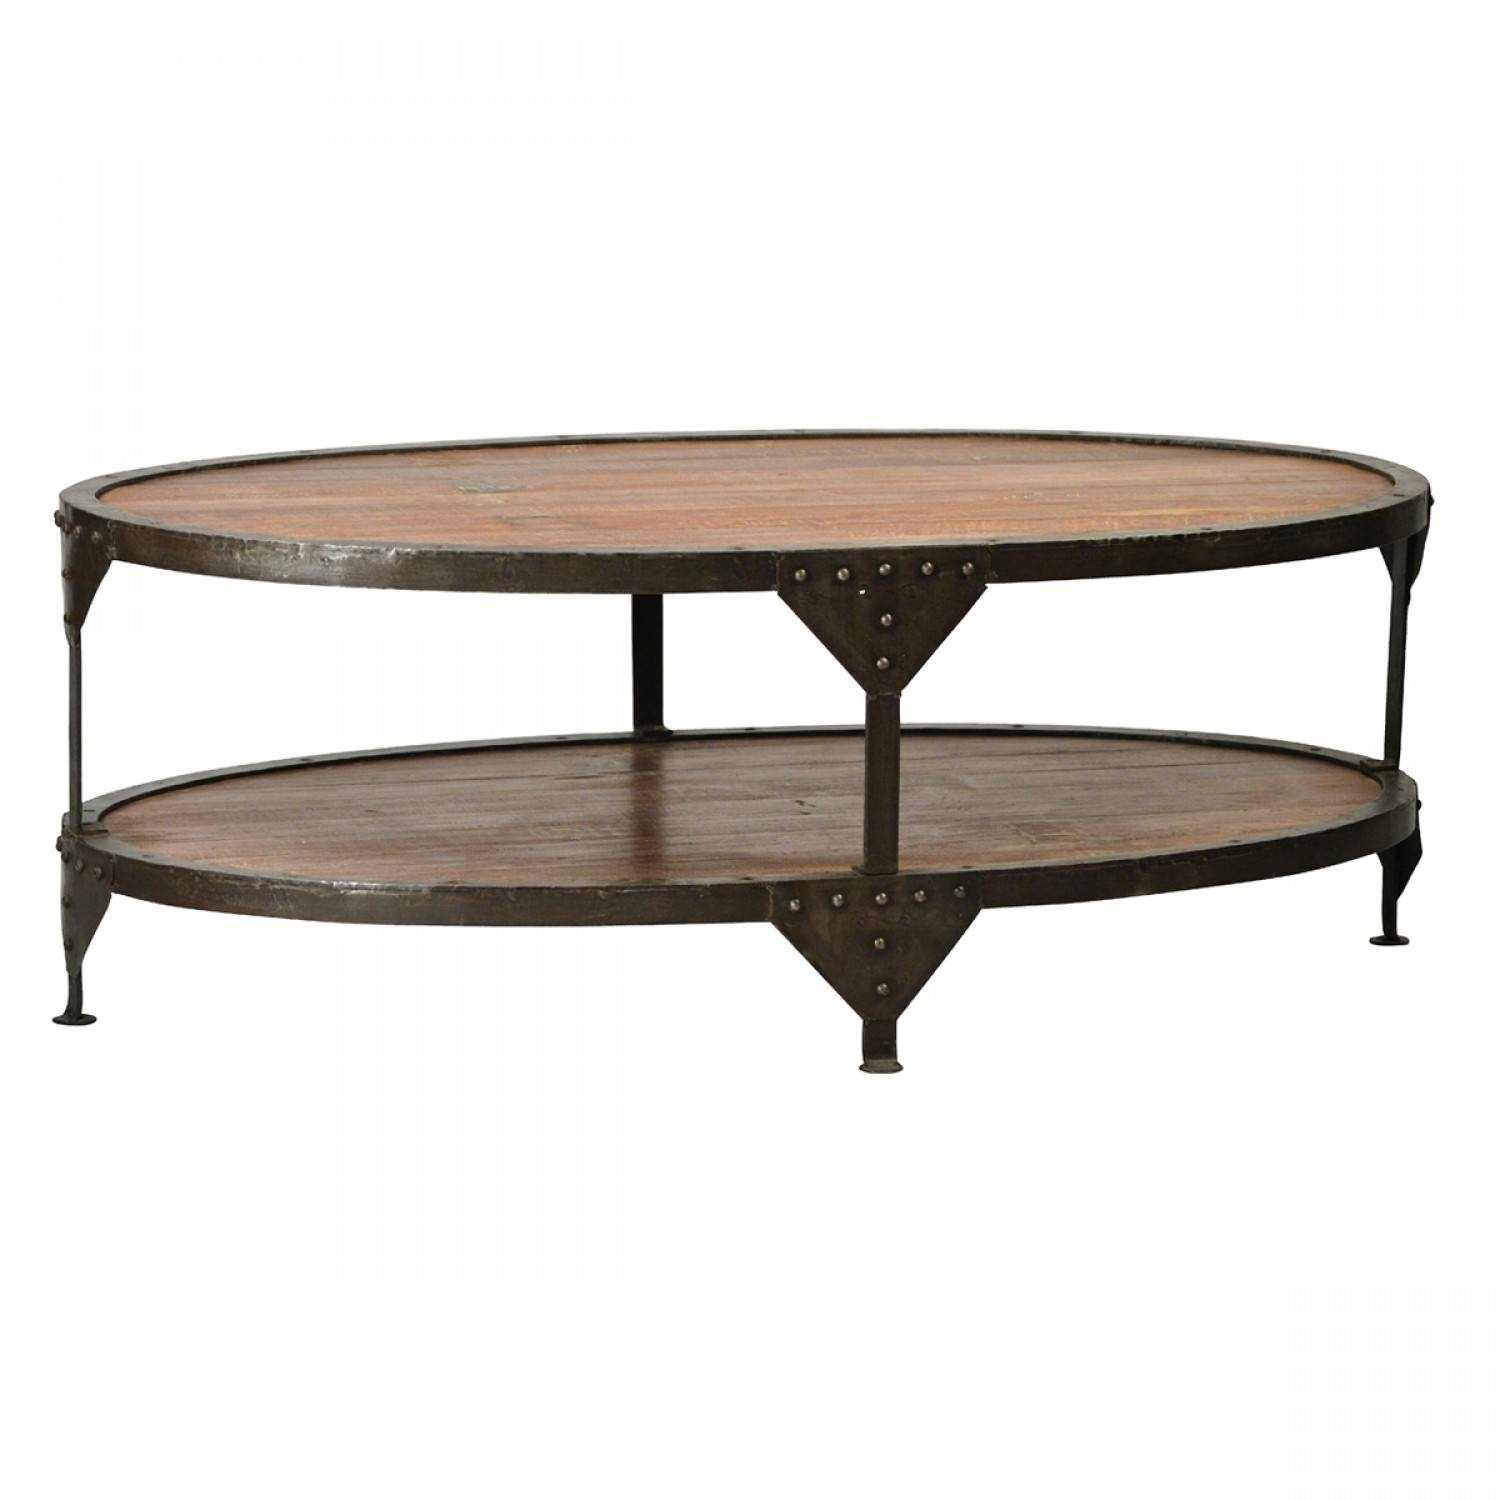 Oval Wood Coffee Table With Metal Legs | Coffee Tables Decoration throughout Oval Wooden Coffee Tables (Image 27 of 30)